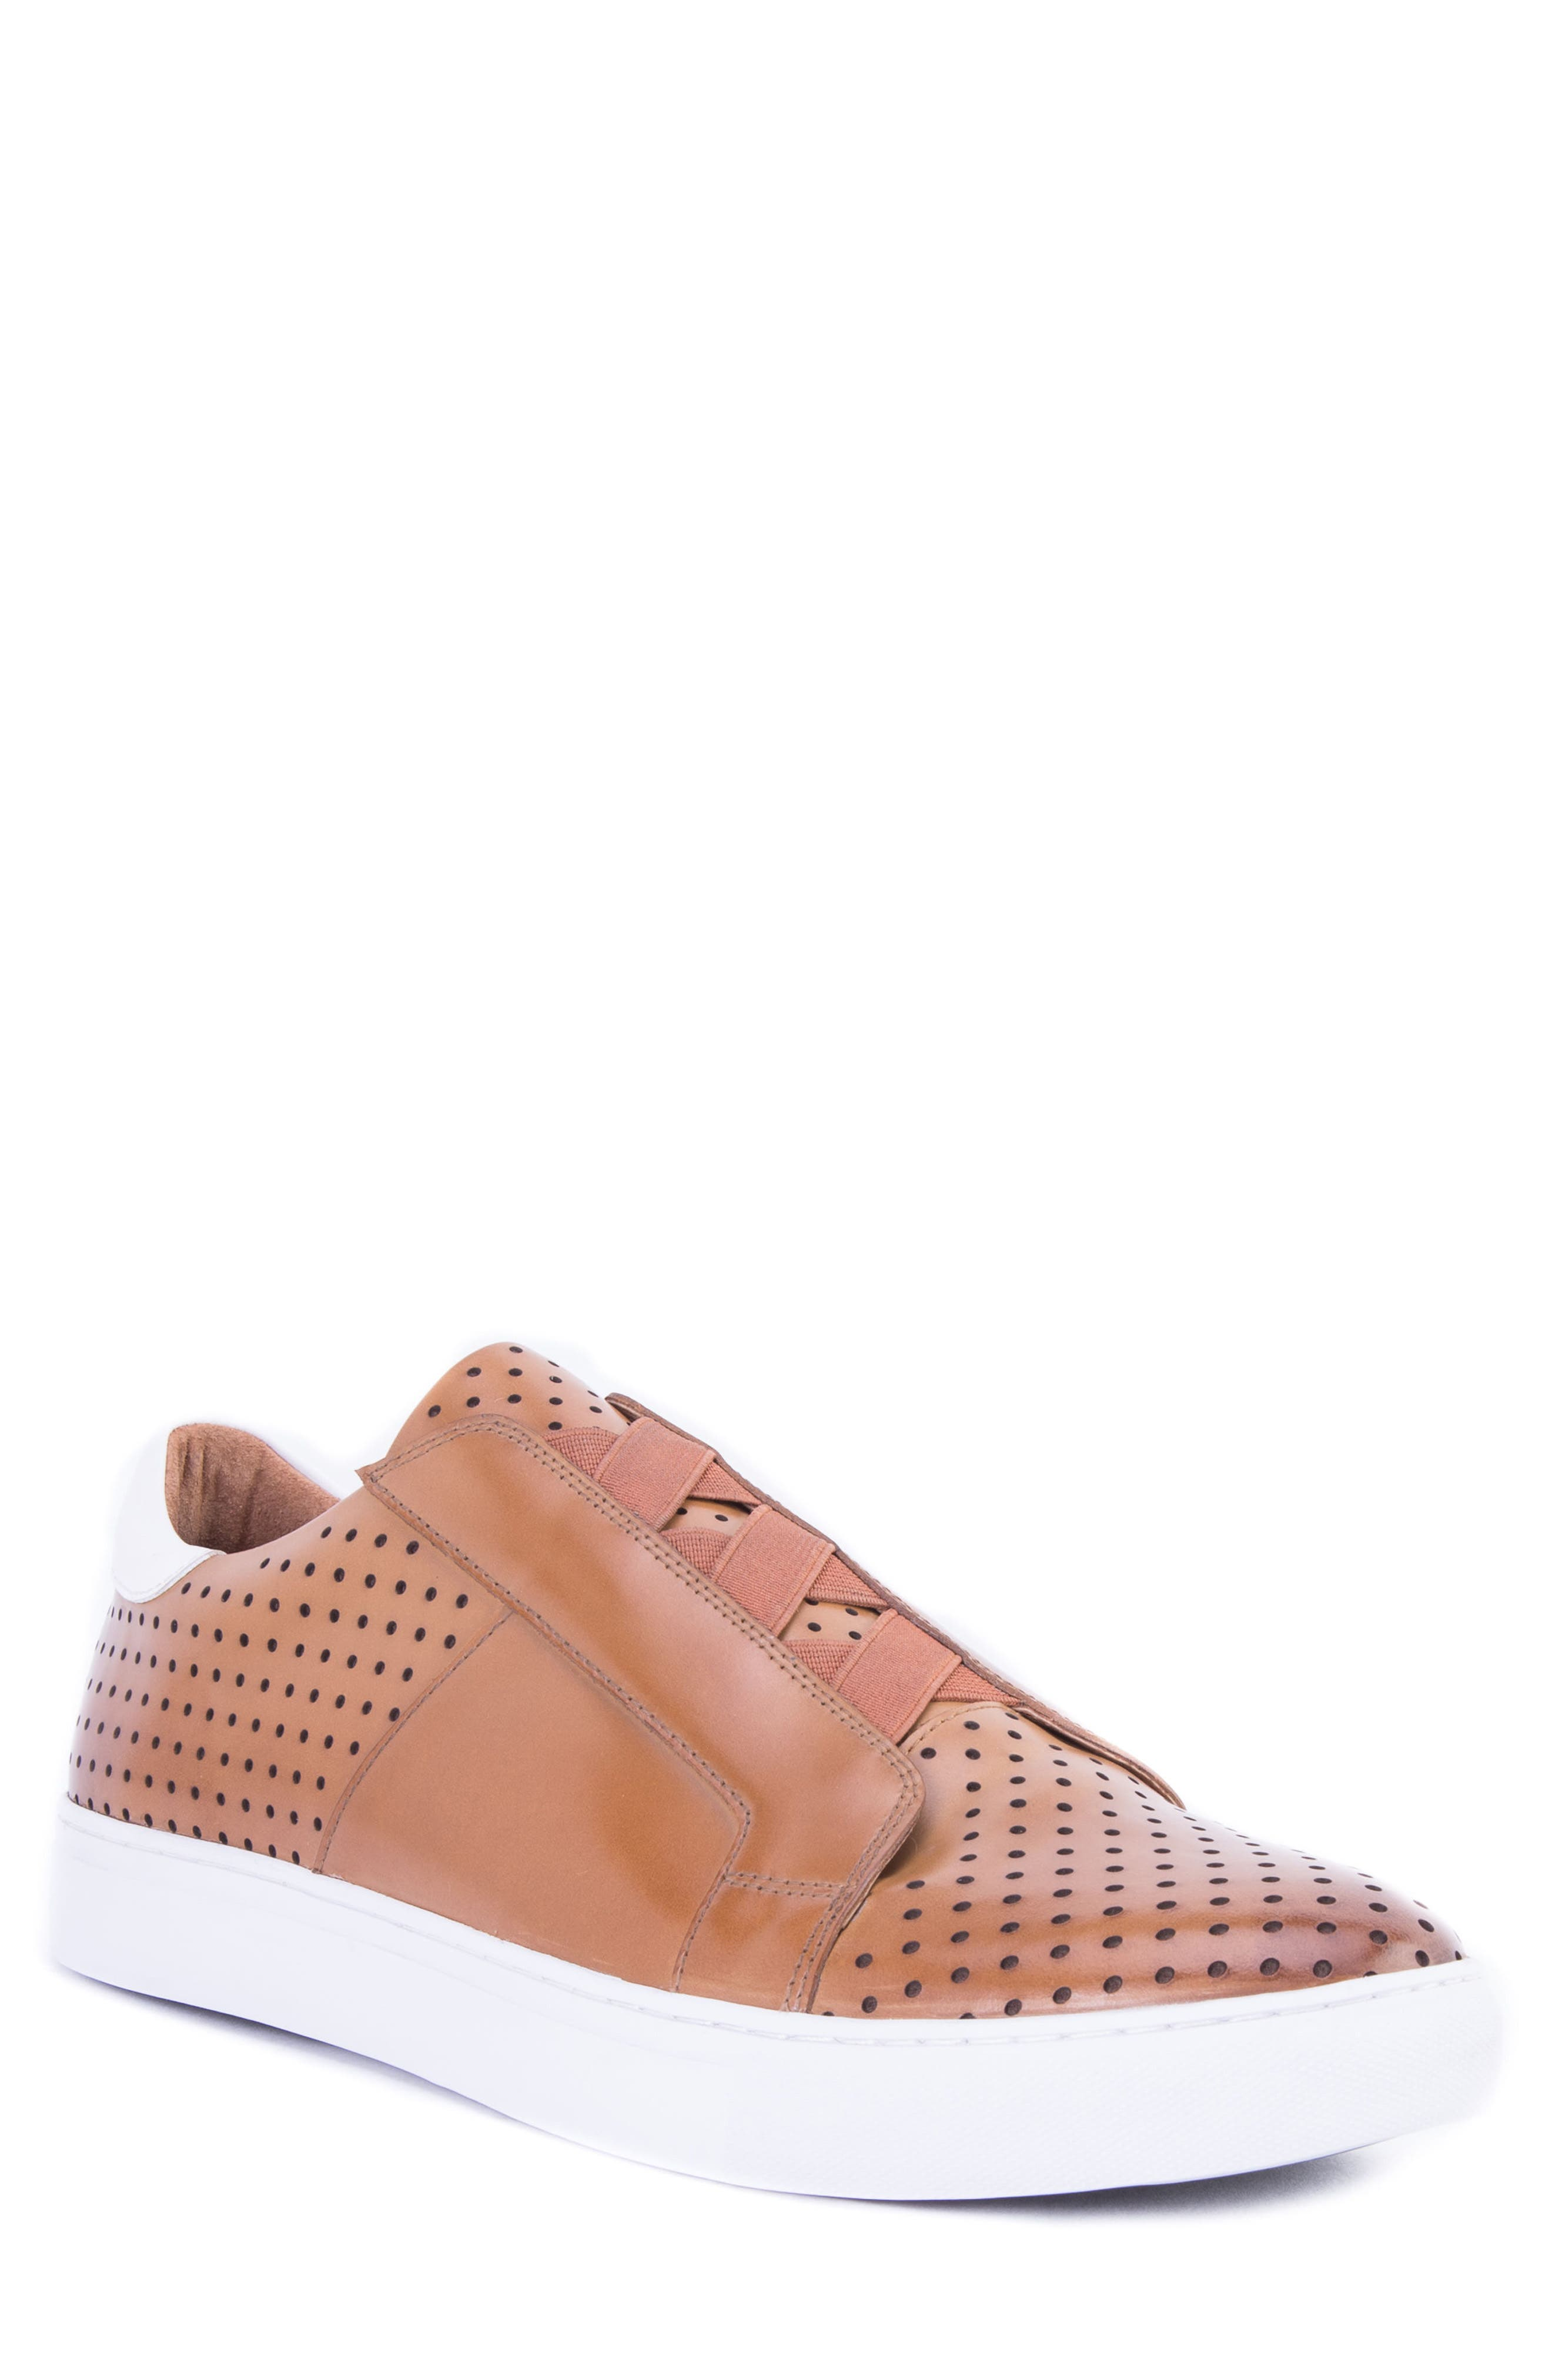 Rowley Perforated Laceless Sneaker,                             Main thumbnail 1, color,                             COGNAC LEATHER